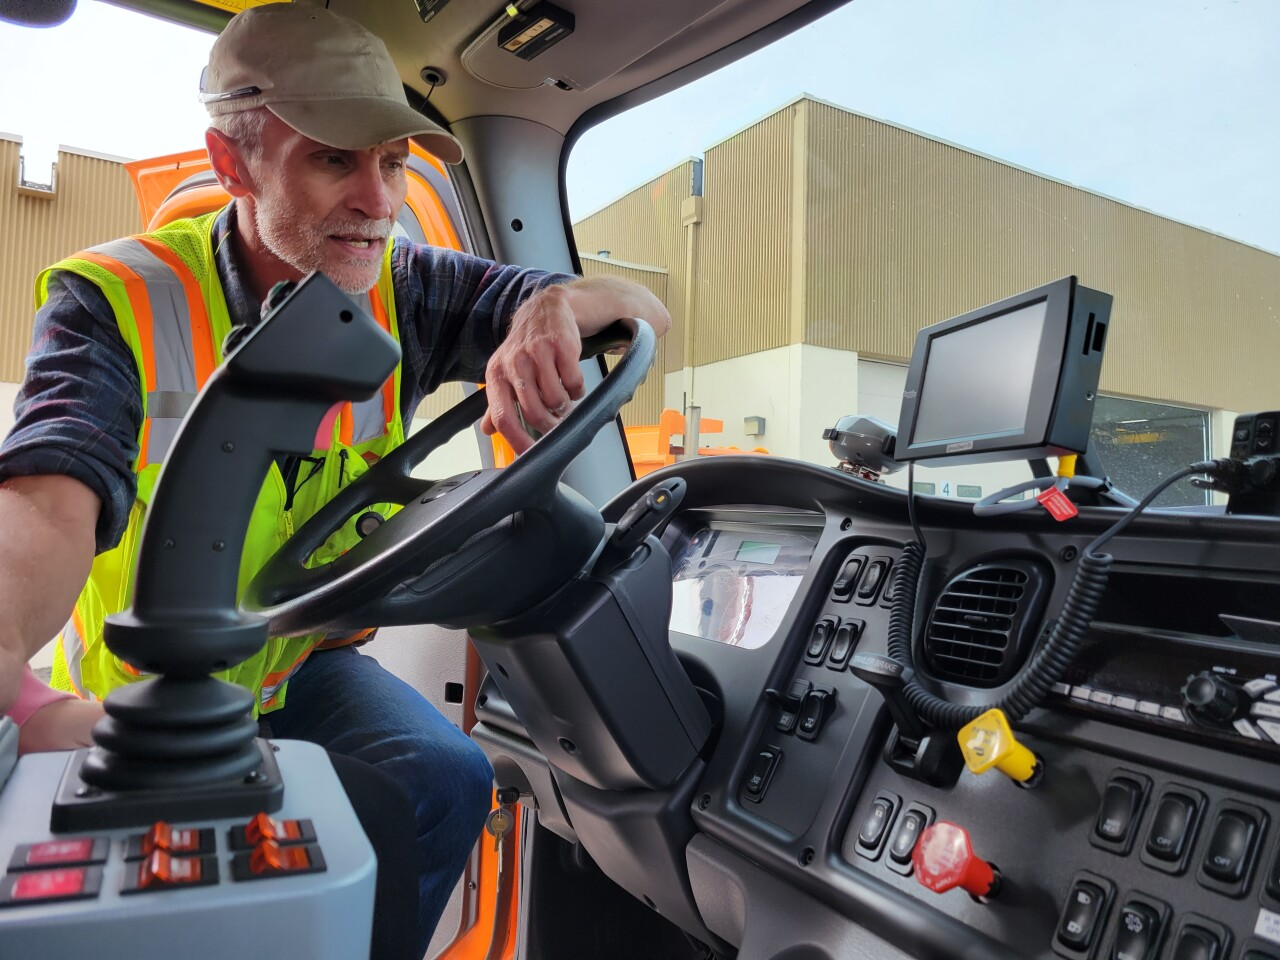 Kevin Peffer showing off the capabilities of MDT's snowplows